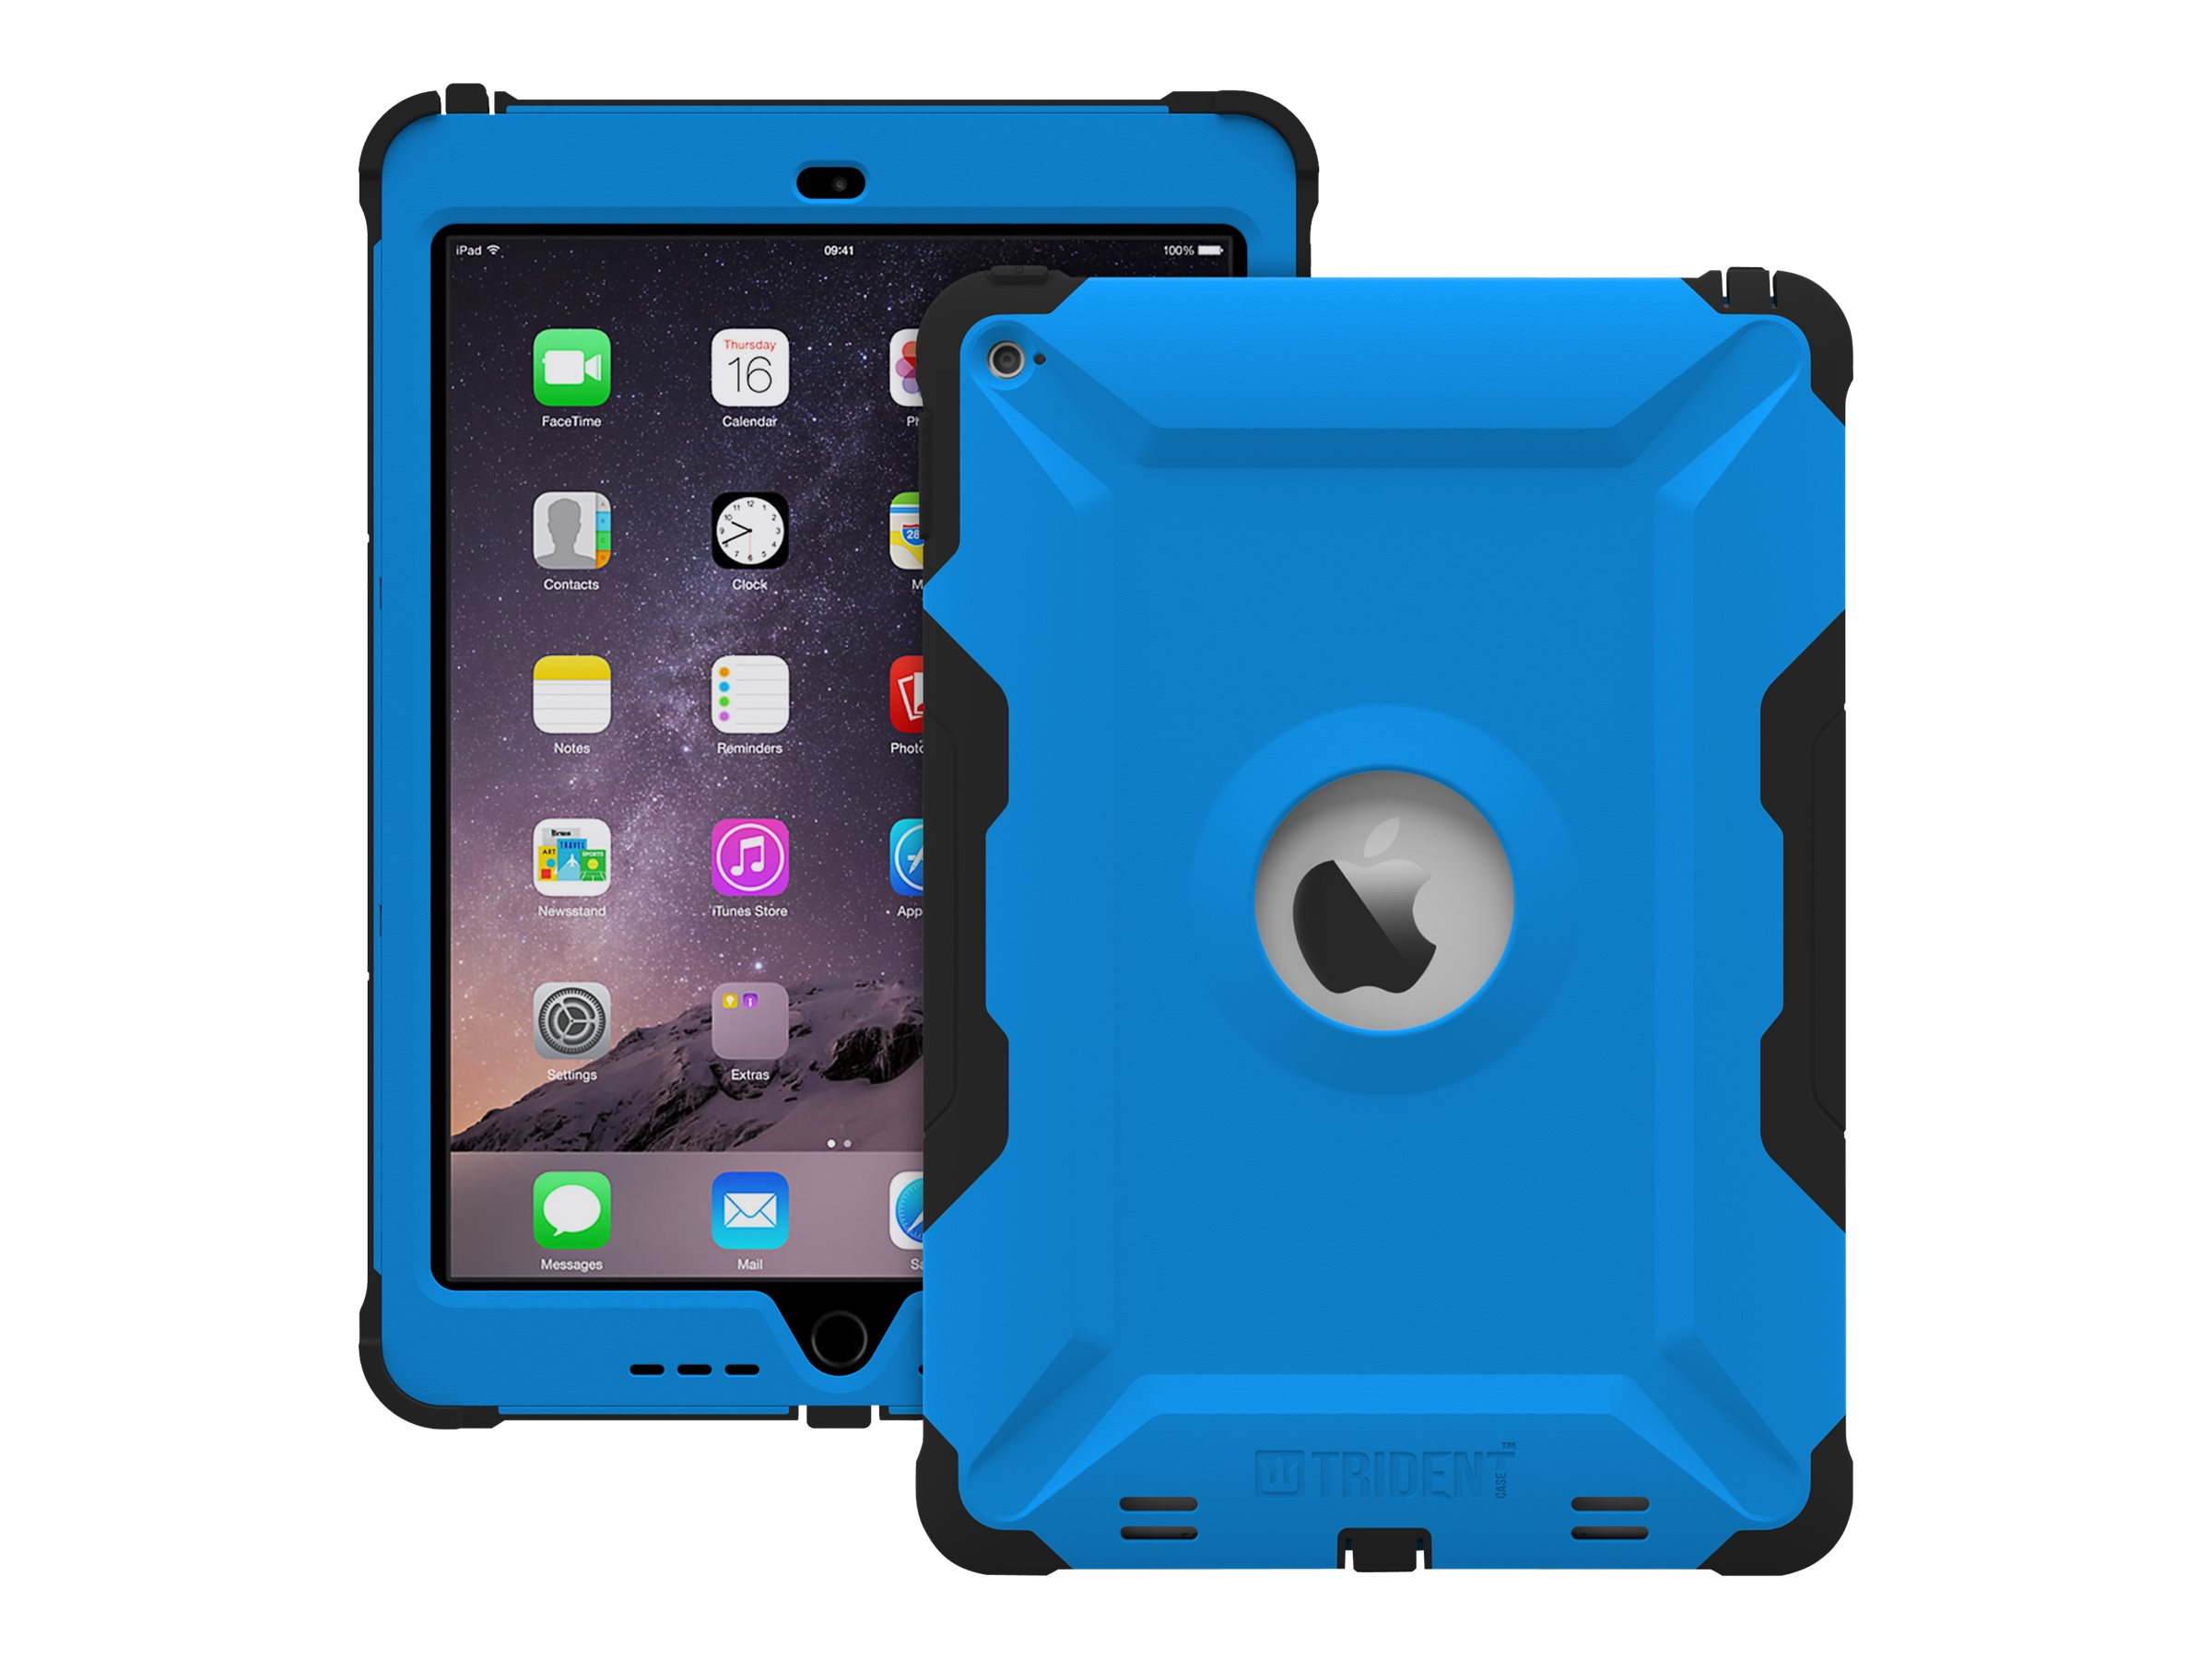 Trident Case 2015 Kraken AMS Case for iPad Air 2, Blue, KN-APIPA2-BL000, 18404863, Carrying Cases - Tablets & eReaders